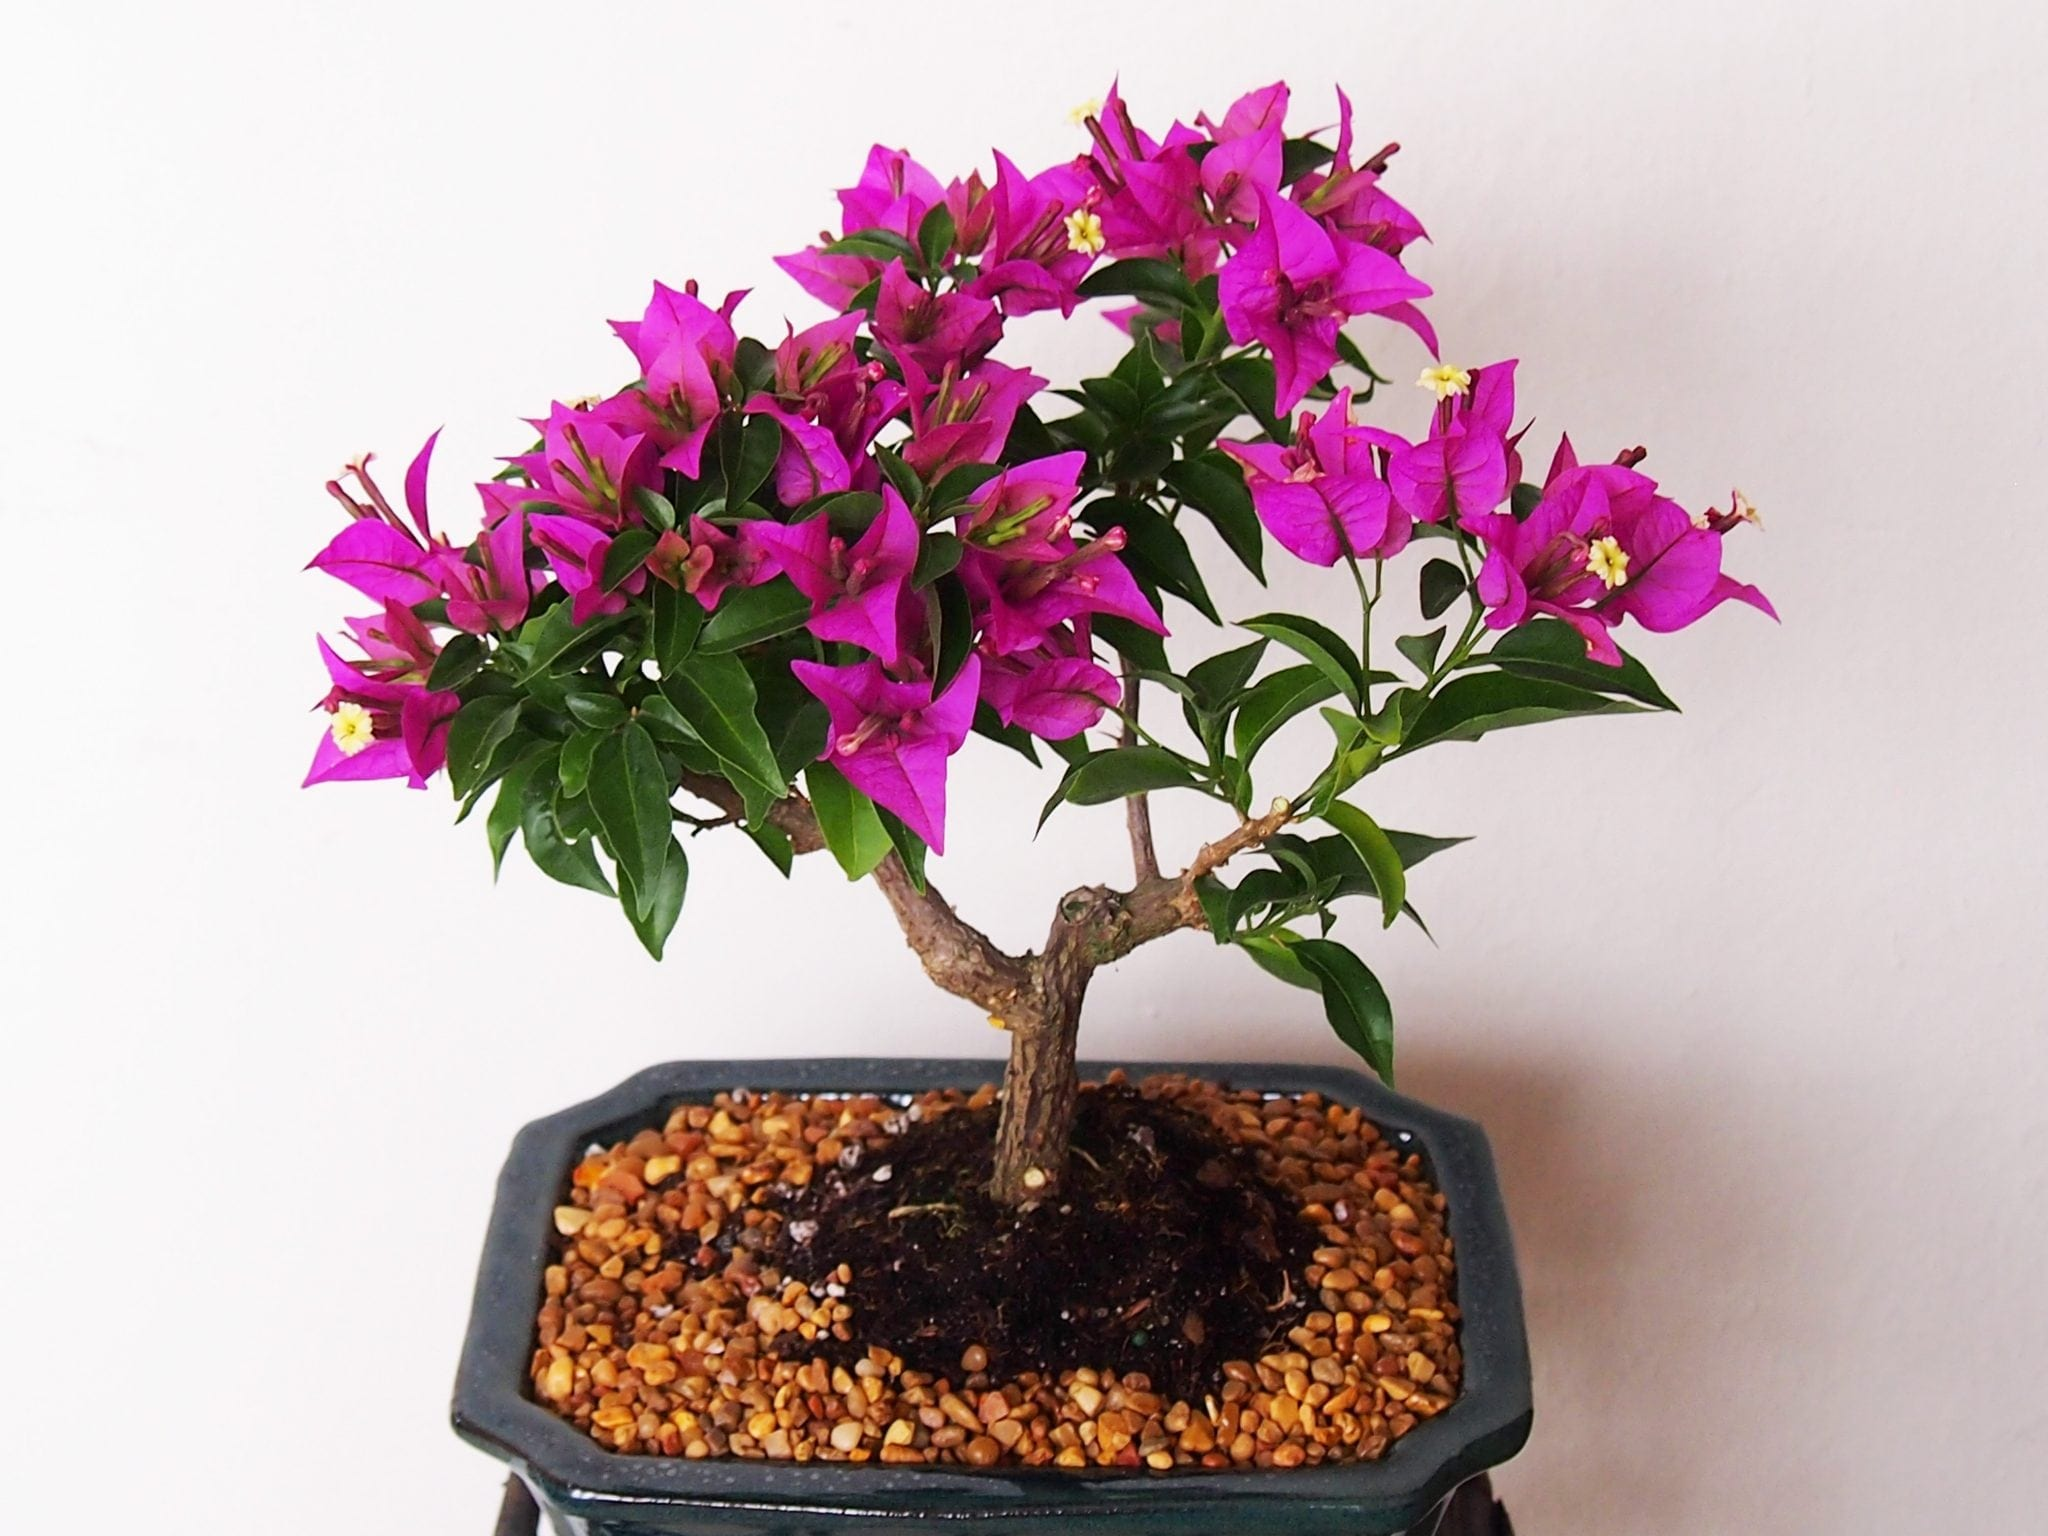 Bougainvillea Bonsai Tree Care Guide Bougainvillea Glabra Bonsai Tree Gardener